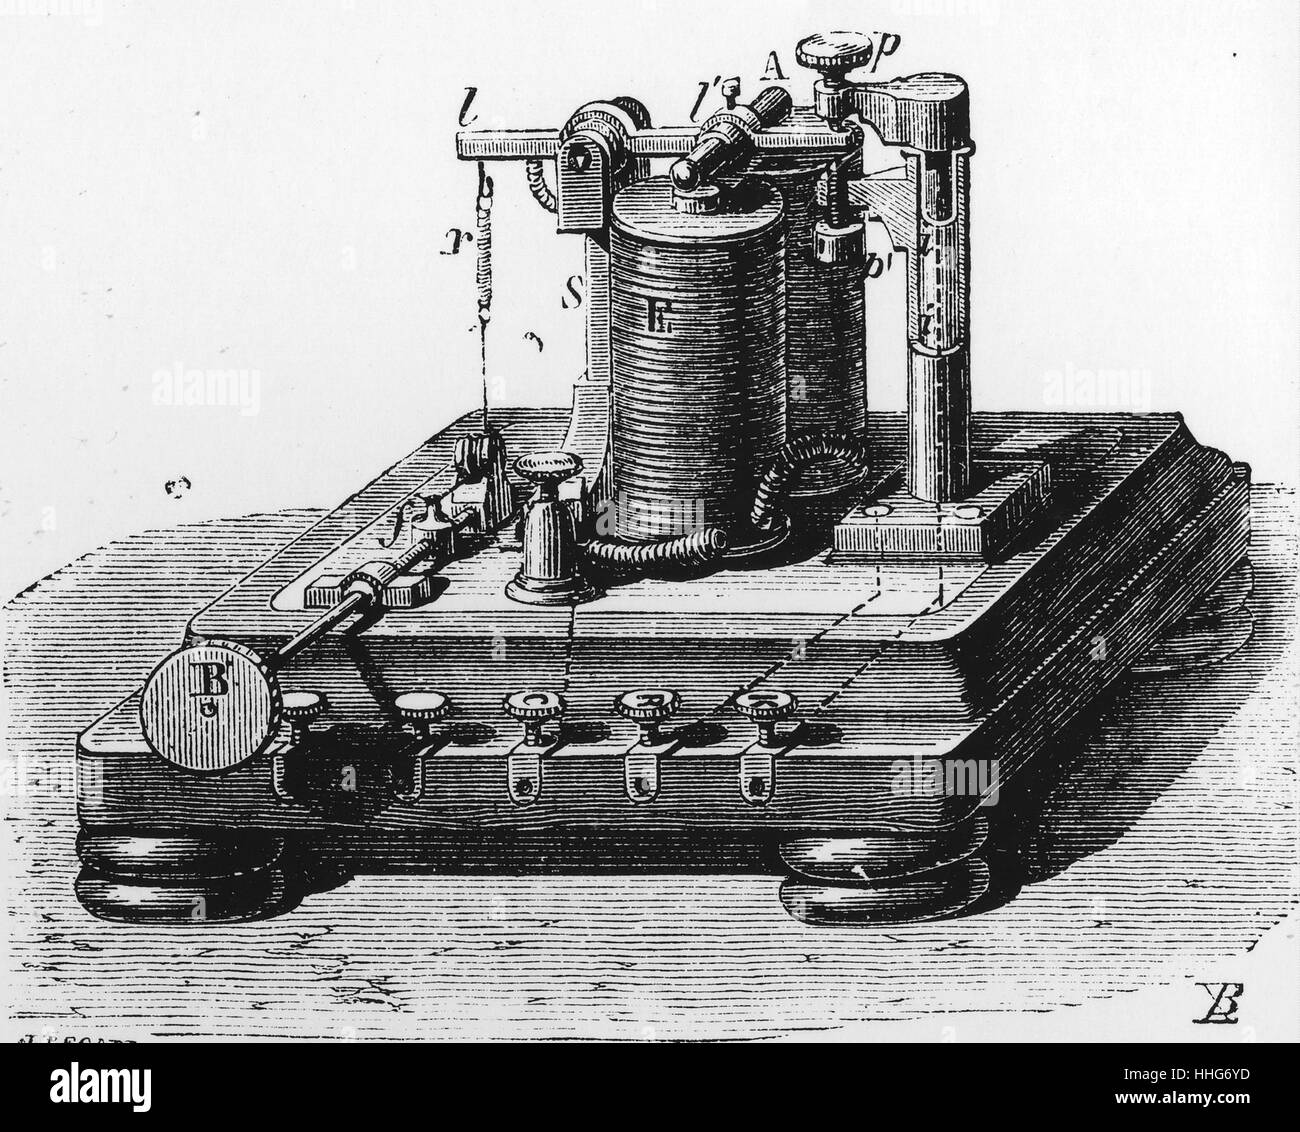 Telegraph relay for use with the Morse system. 1870. - Stock Image